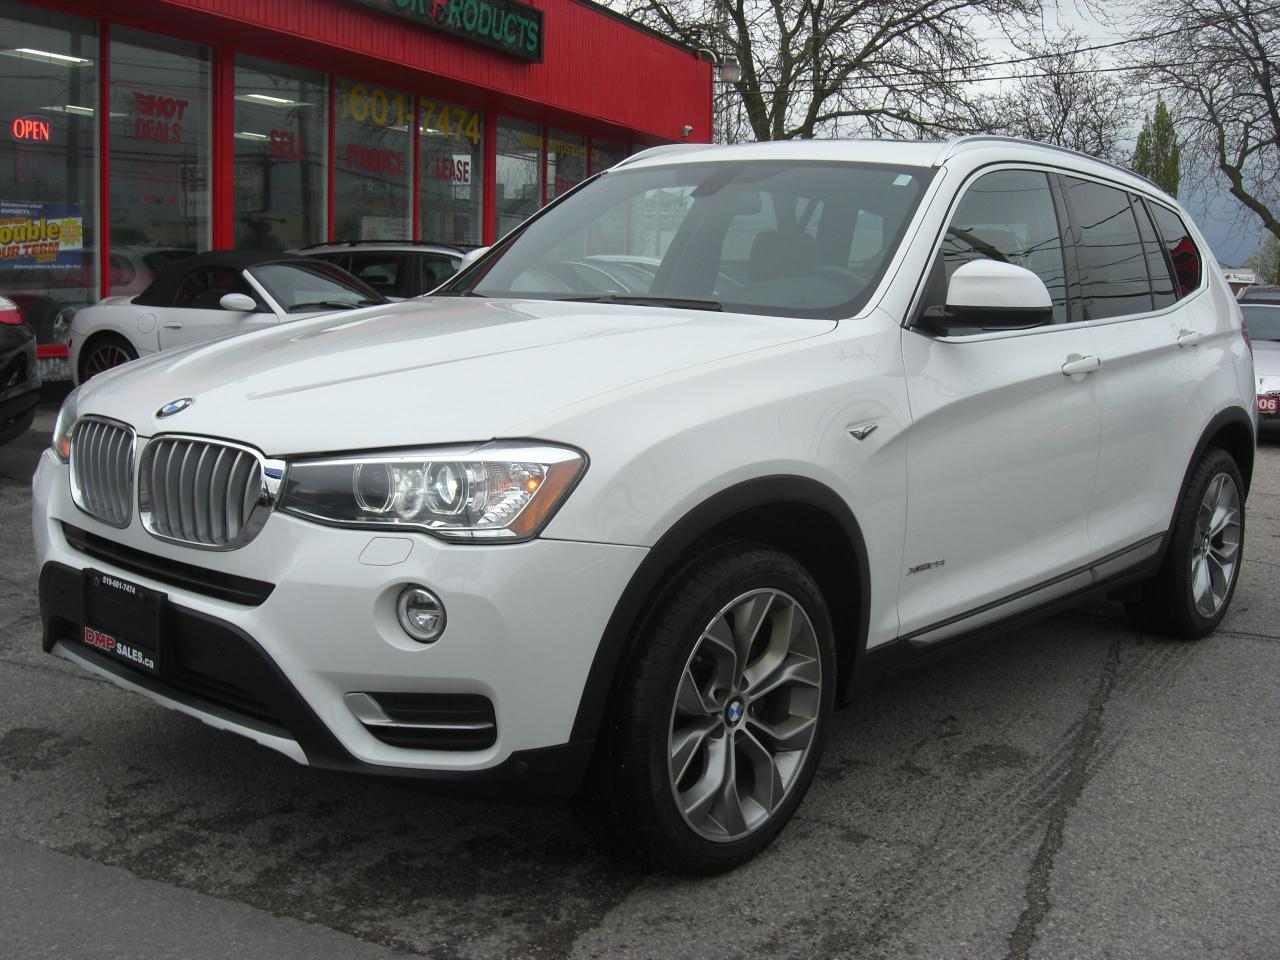 Bmw London Ontario >> Used 2015 Bmw X3 Xdrive28i For Sale In London Ontario